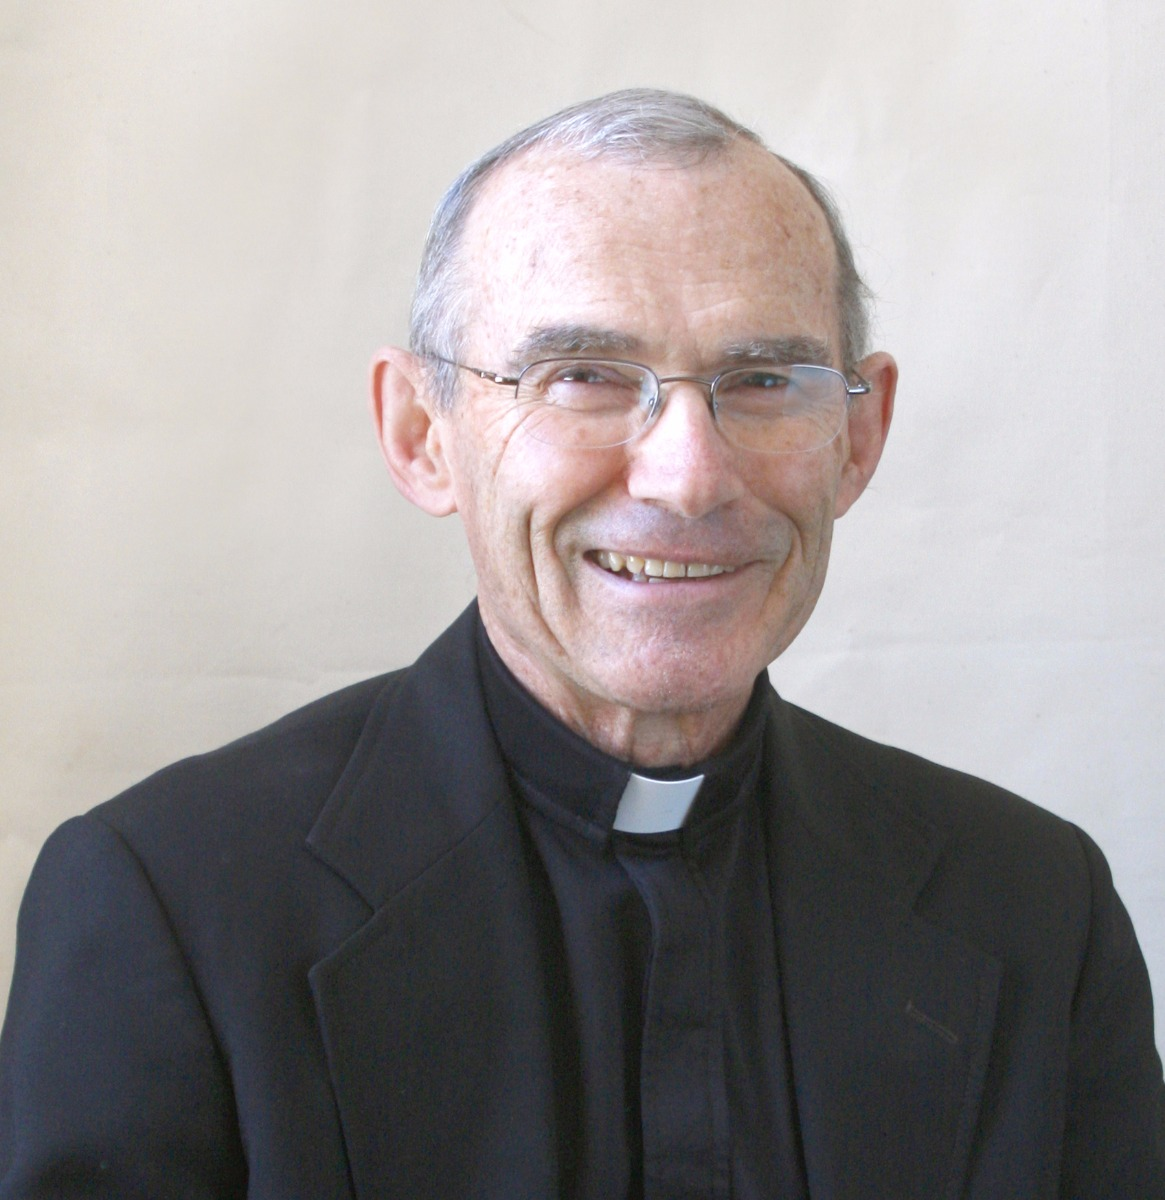 Bishop Robert F. Morneau